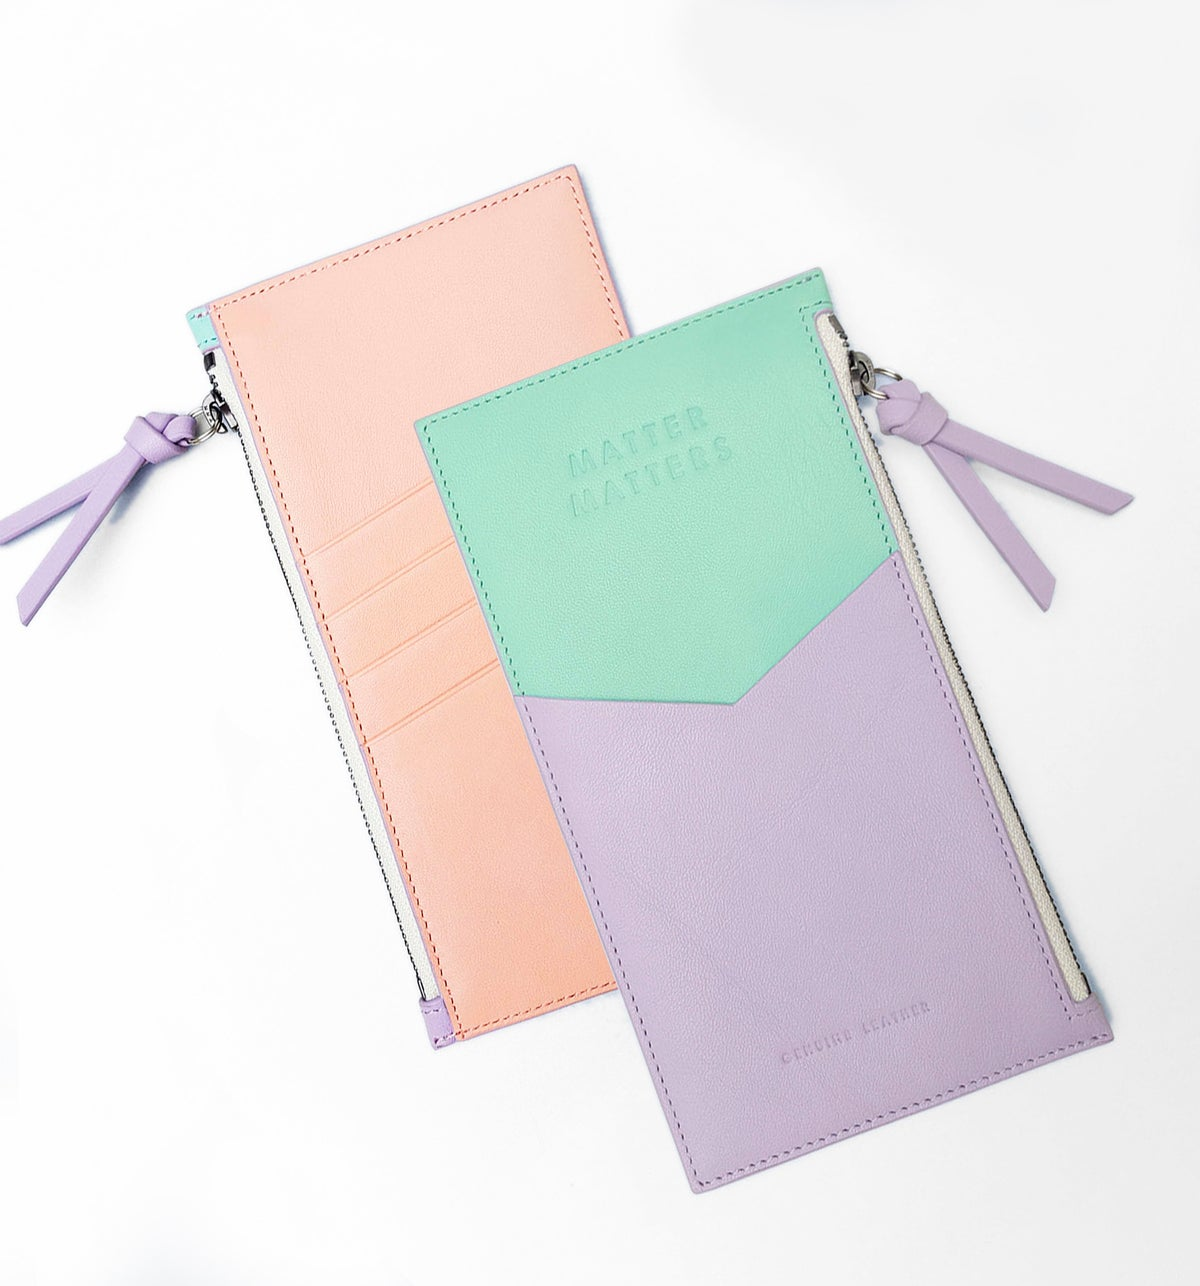 Image of Mini Zipped Pouch - Lilac  and Mint